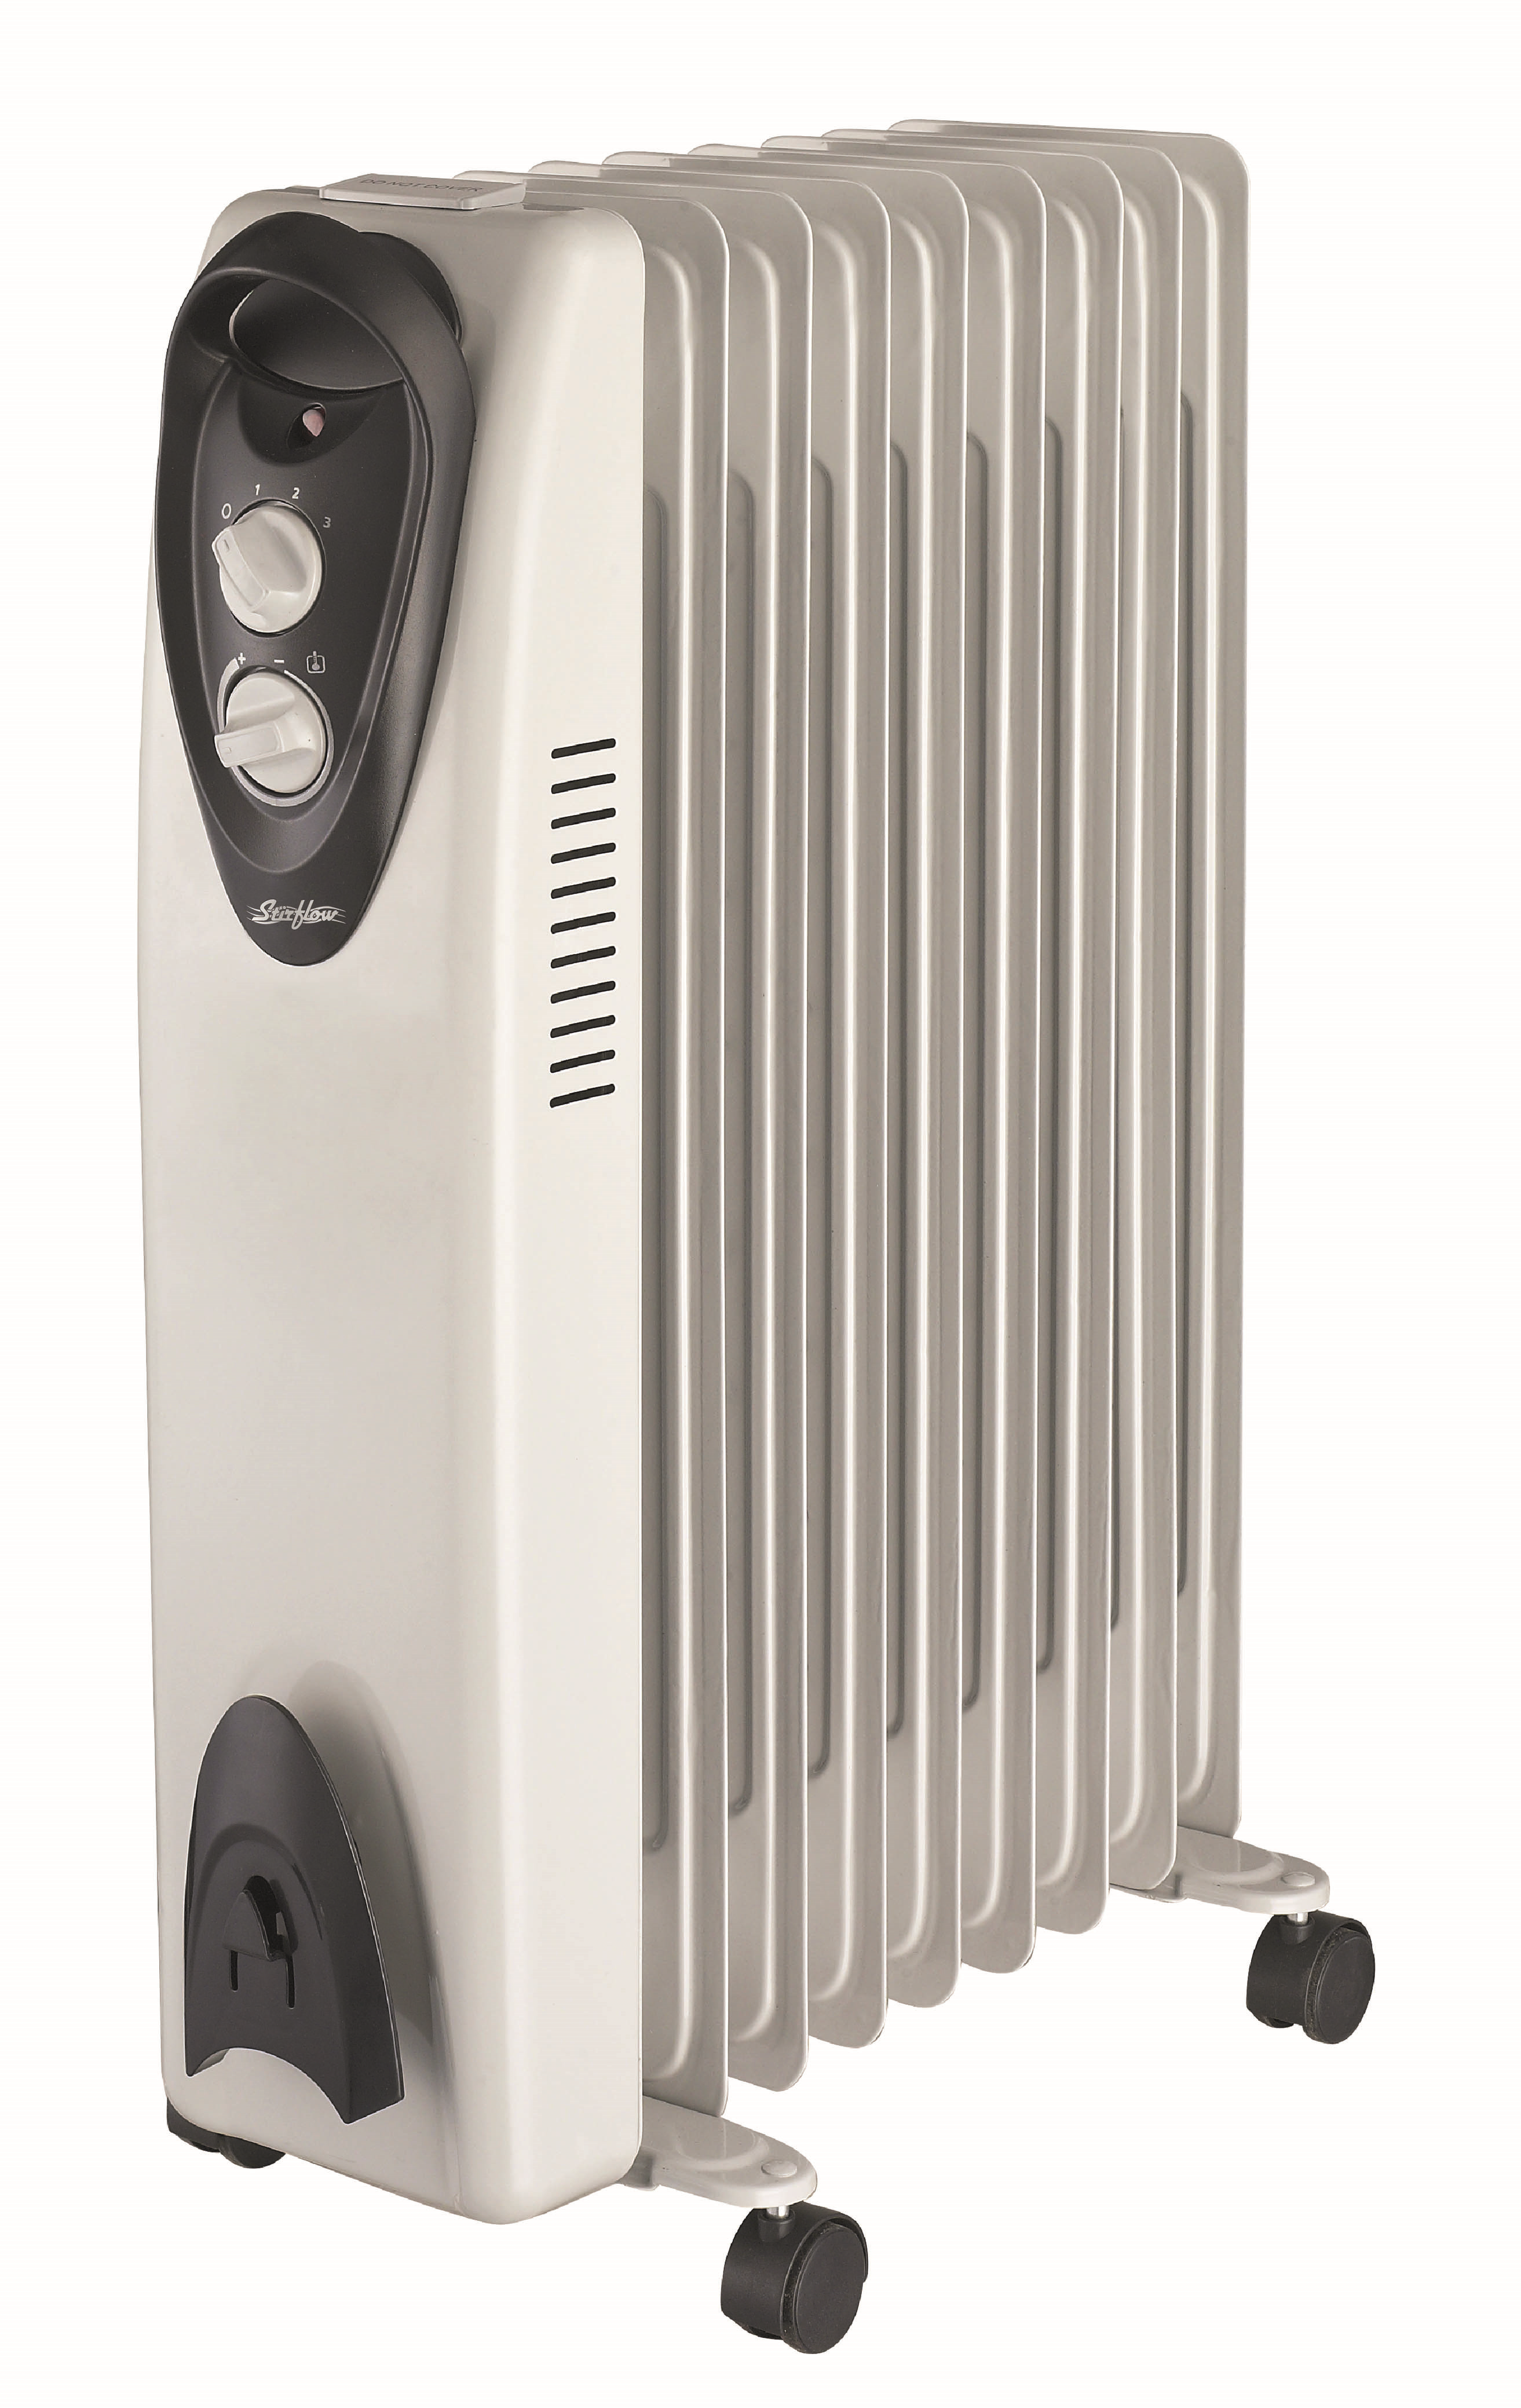 Stearn SOFR20 Oil Filled Radiator 2kW